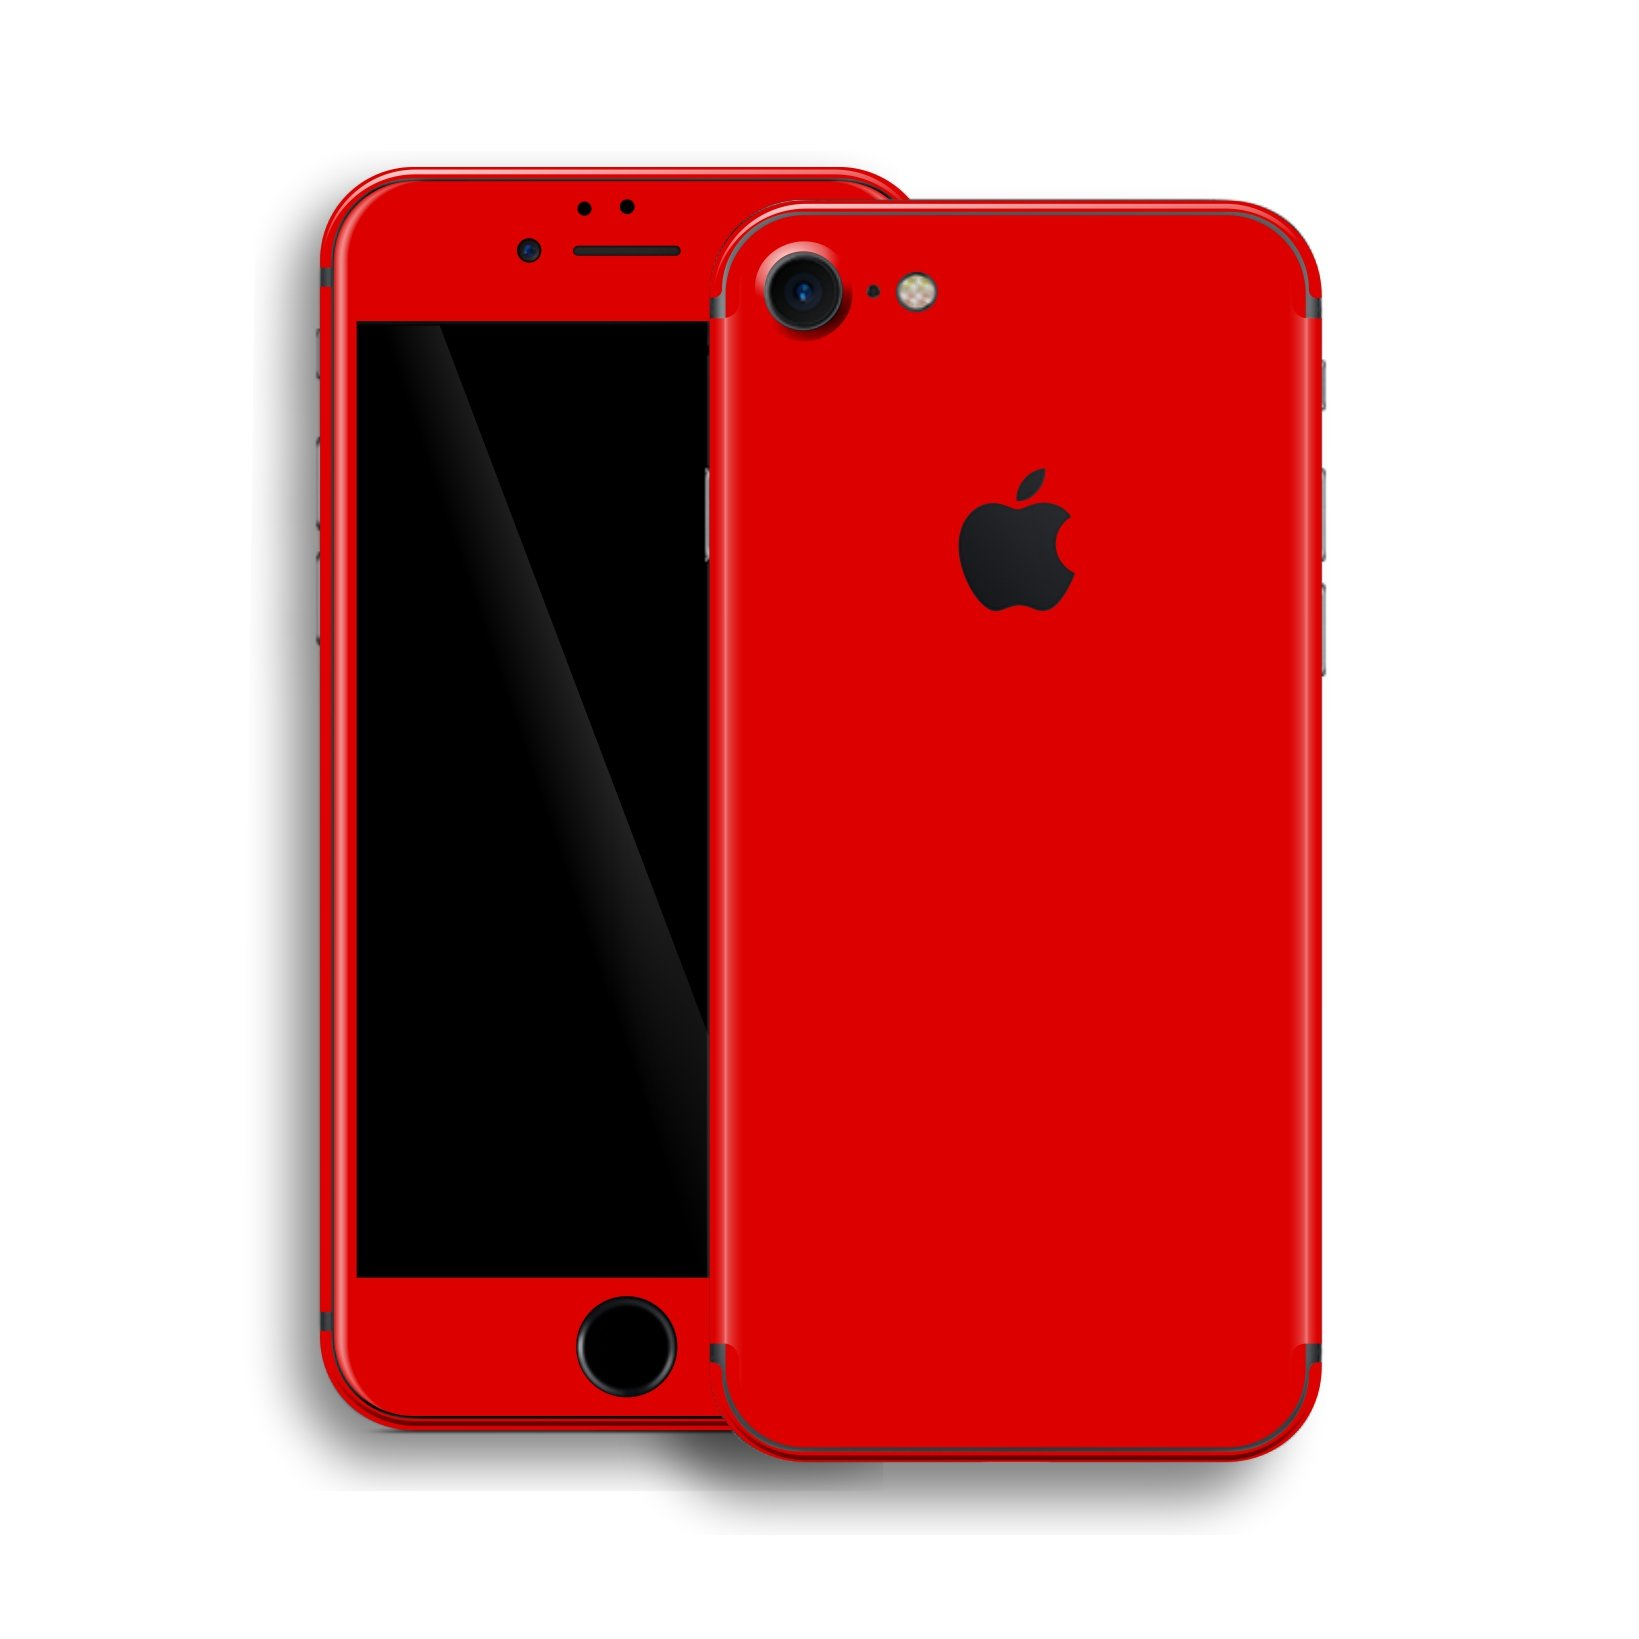 iPhone 8 Red Matt Matte Skin, Wrap, Decal, Protector, Cover by EasySkinz | EasySkinz.com